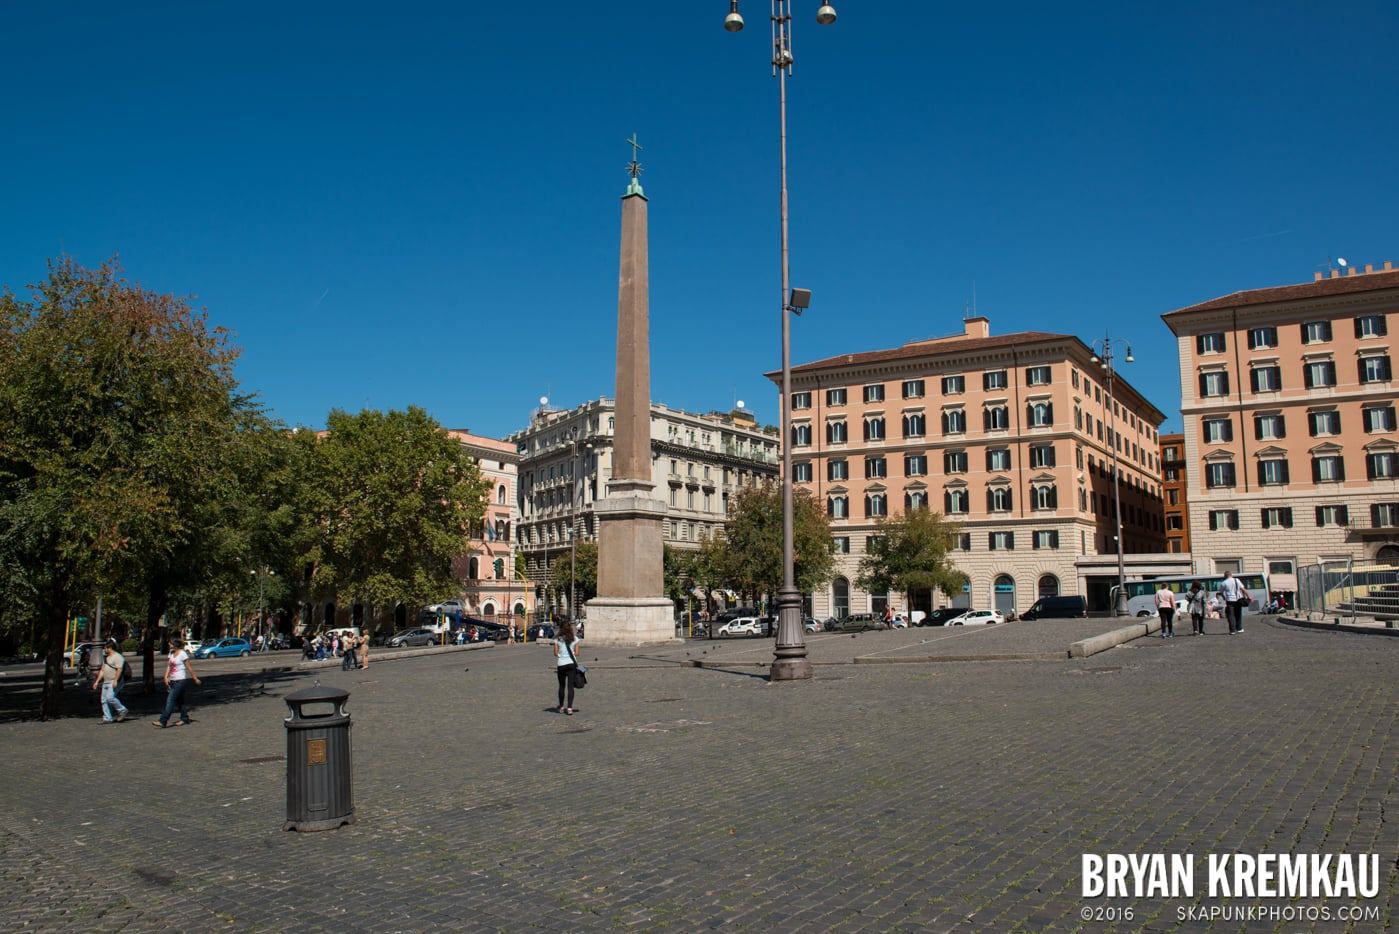 Italy Vacation - Day 12: Rome - 9.20.13 (49)